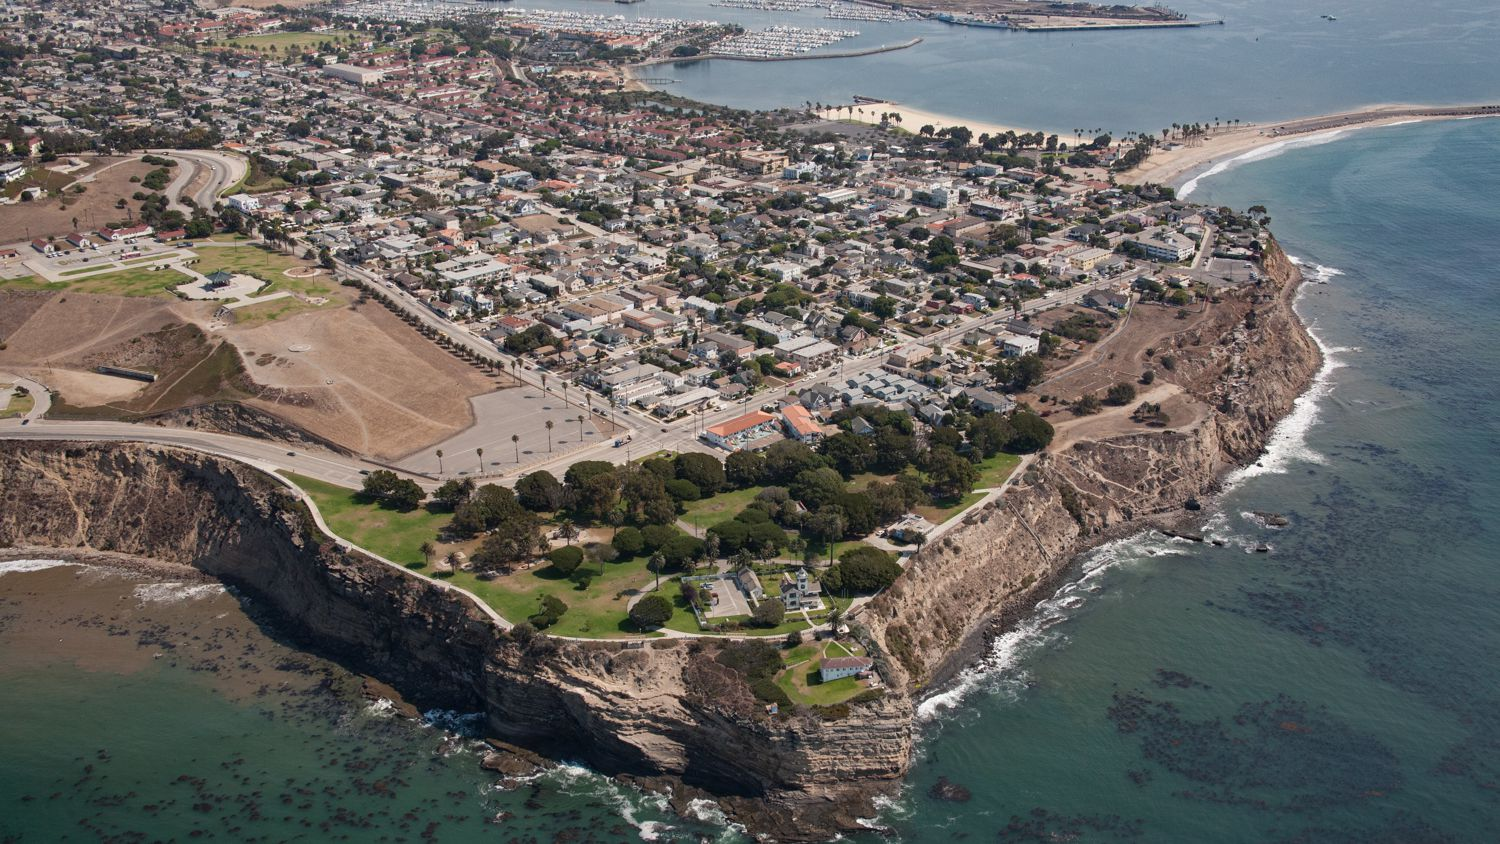 What to See and Do in San Pedro, California